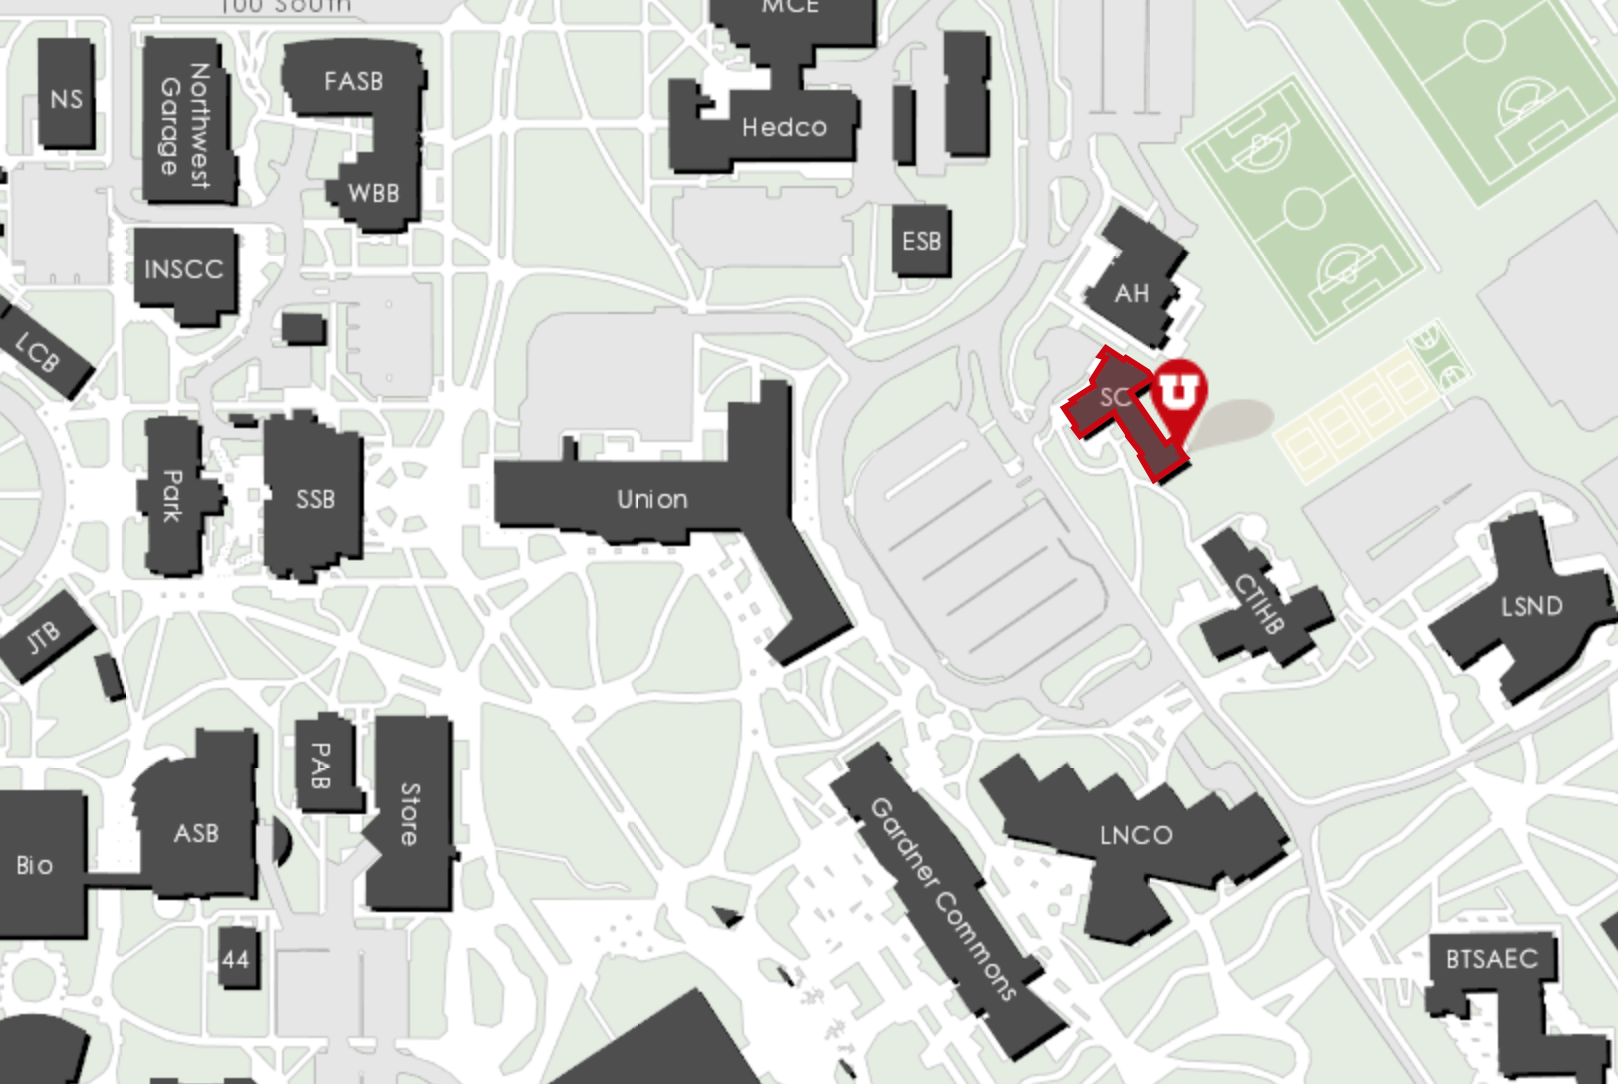 Campus map showing where the Sill Center is located